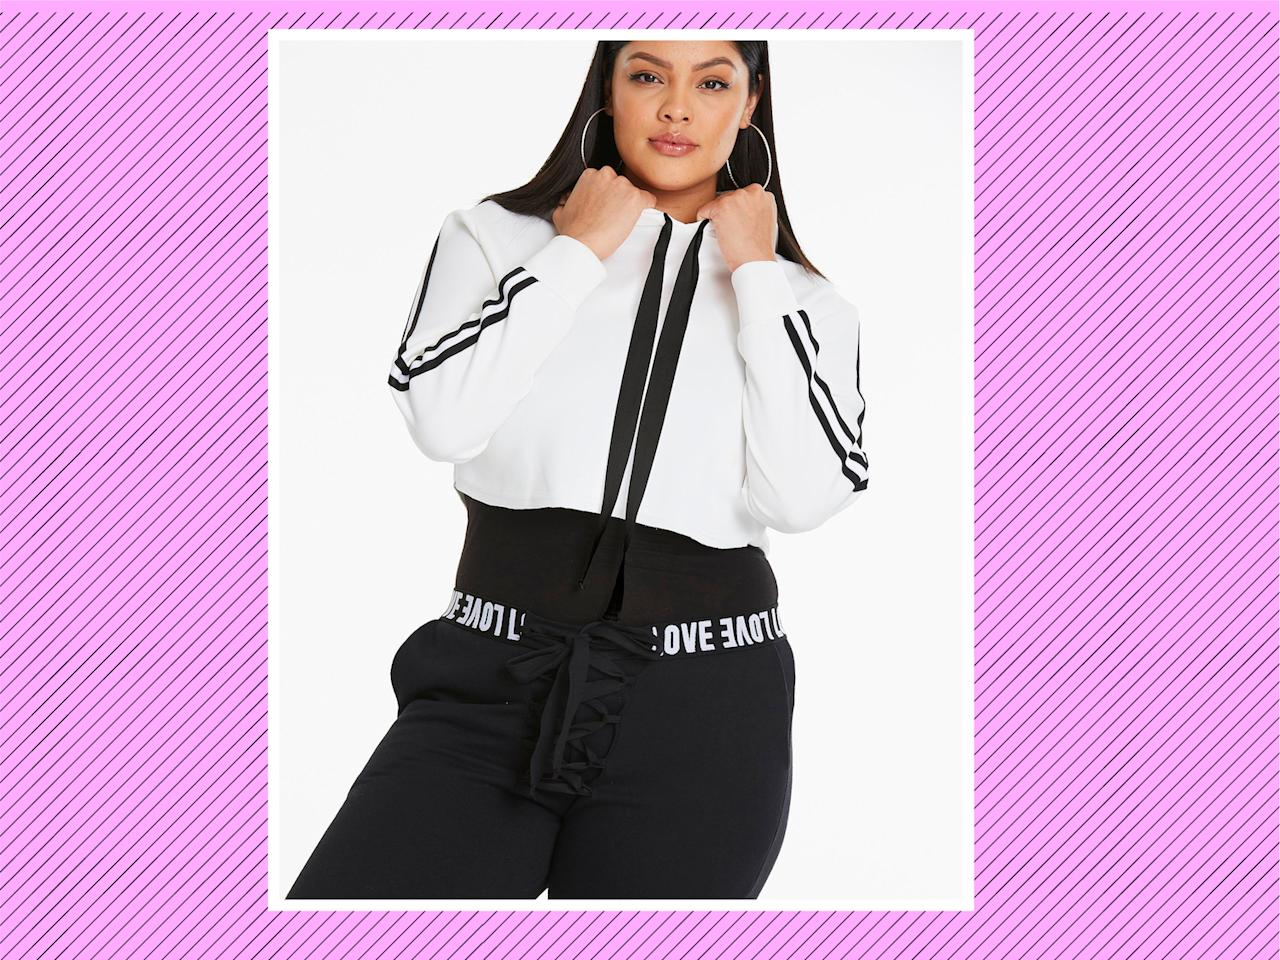 """<p><a rel=""""nofollow"""" href=""""https://www.simplybe.com/en-us/products/crop-hoodie-with-sports-trim/p/WZ618#v=color%3AWZ618_WHITE%7C"""">Crop Hoodie With Sports Trim</a>, $40, and <a rel=""""nofollow"""" href=""""https://www.simplybe.com/en-us/products/lace-up-front-jogger/p/WZ610"""">Lace Up Front Jogger</a>, $46, Simply Be (Photo: Simply Be) </p>"""